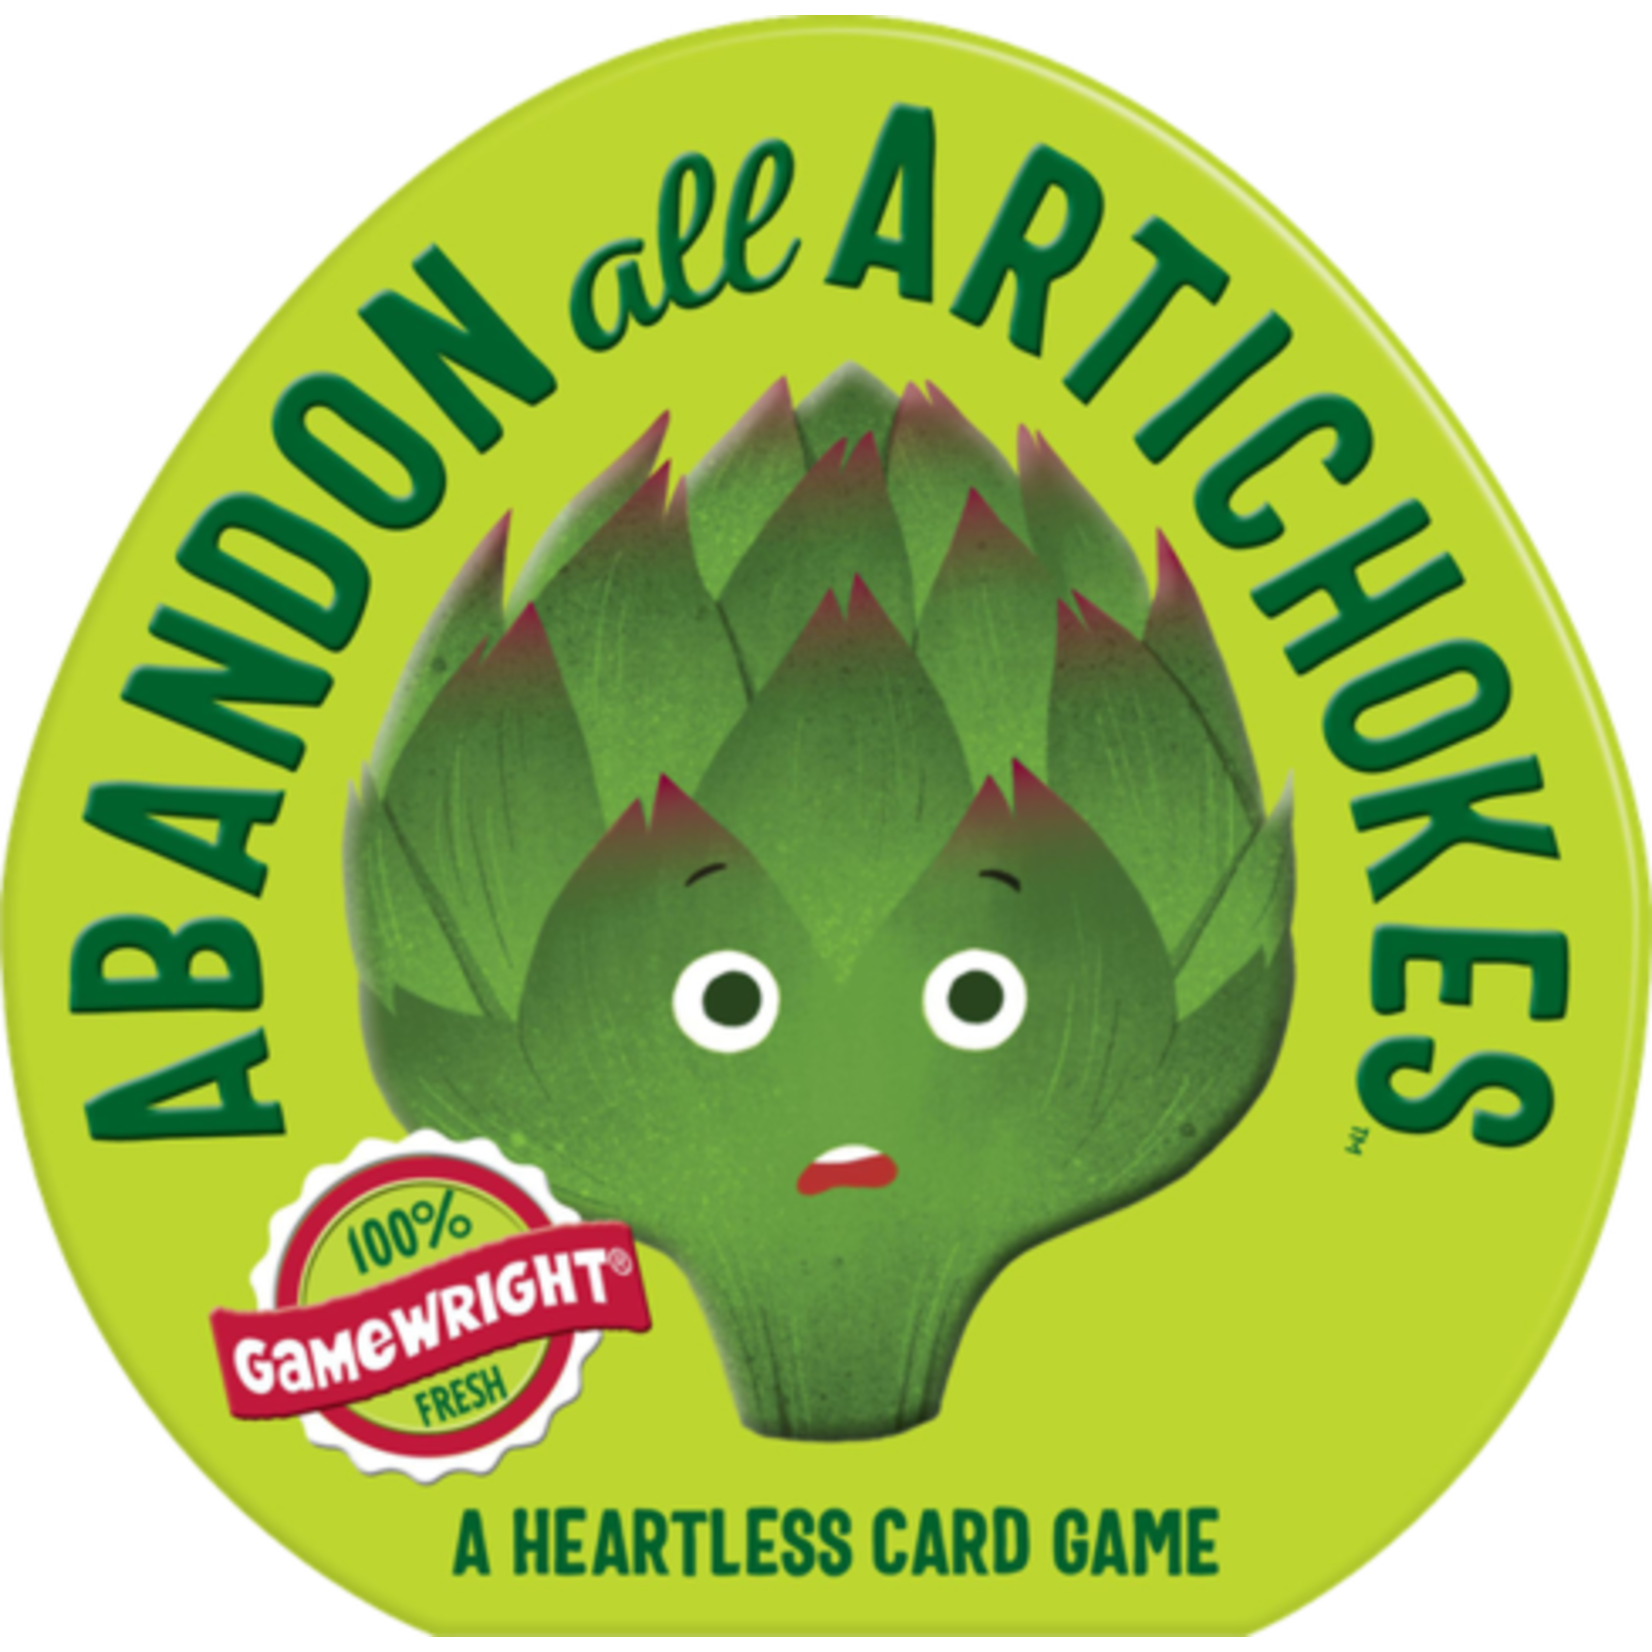 GameWright Abandon All Artichokes